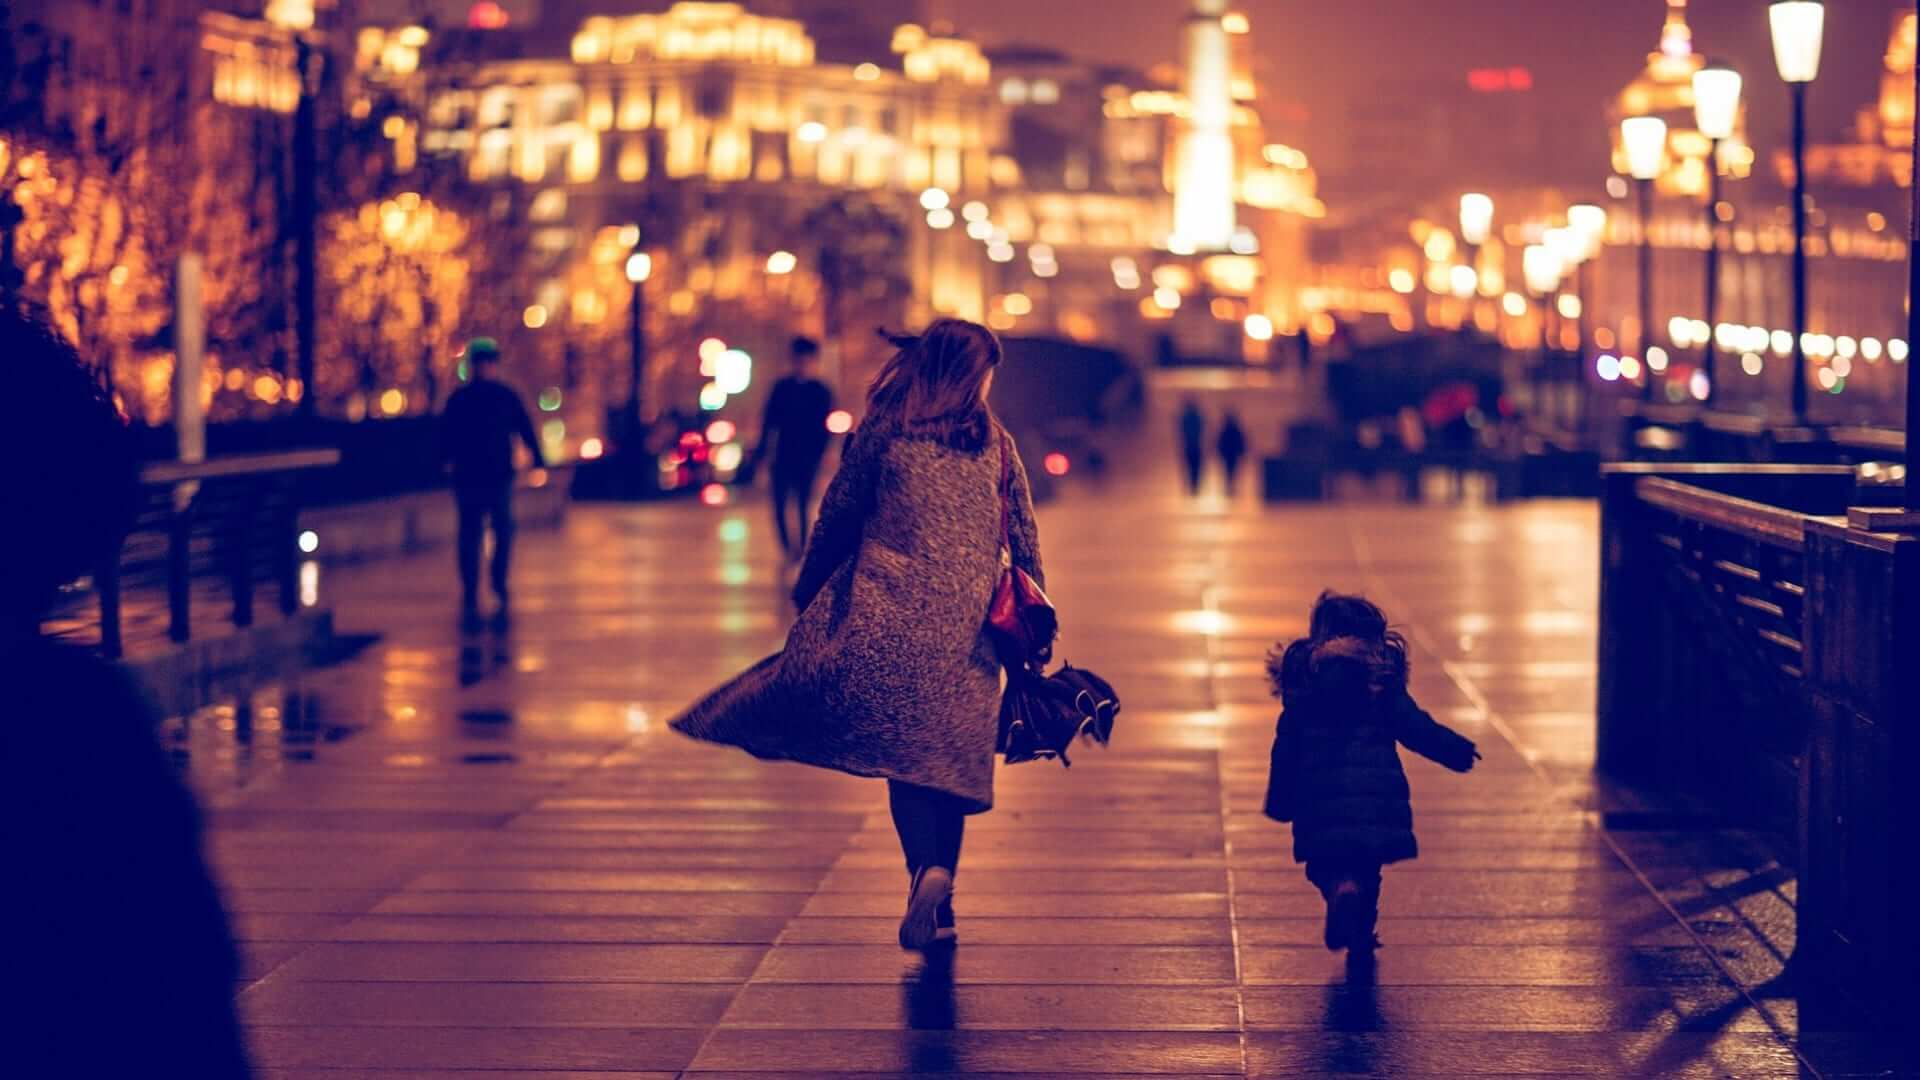 A woman and a child are running on a quay towards an illuminated building on a rainy evening in Shanghai.